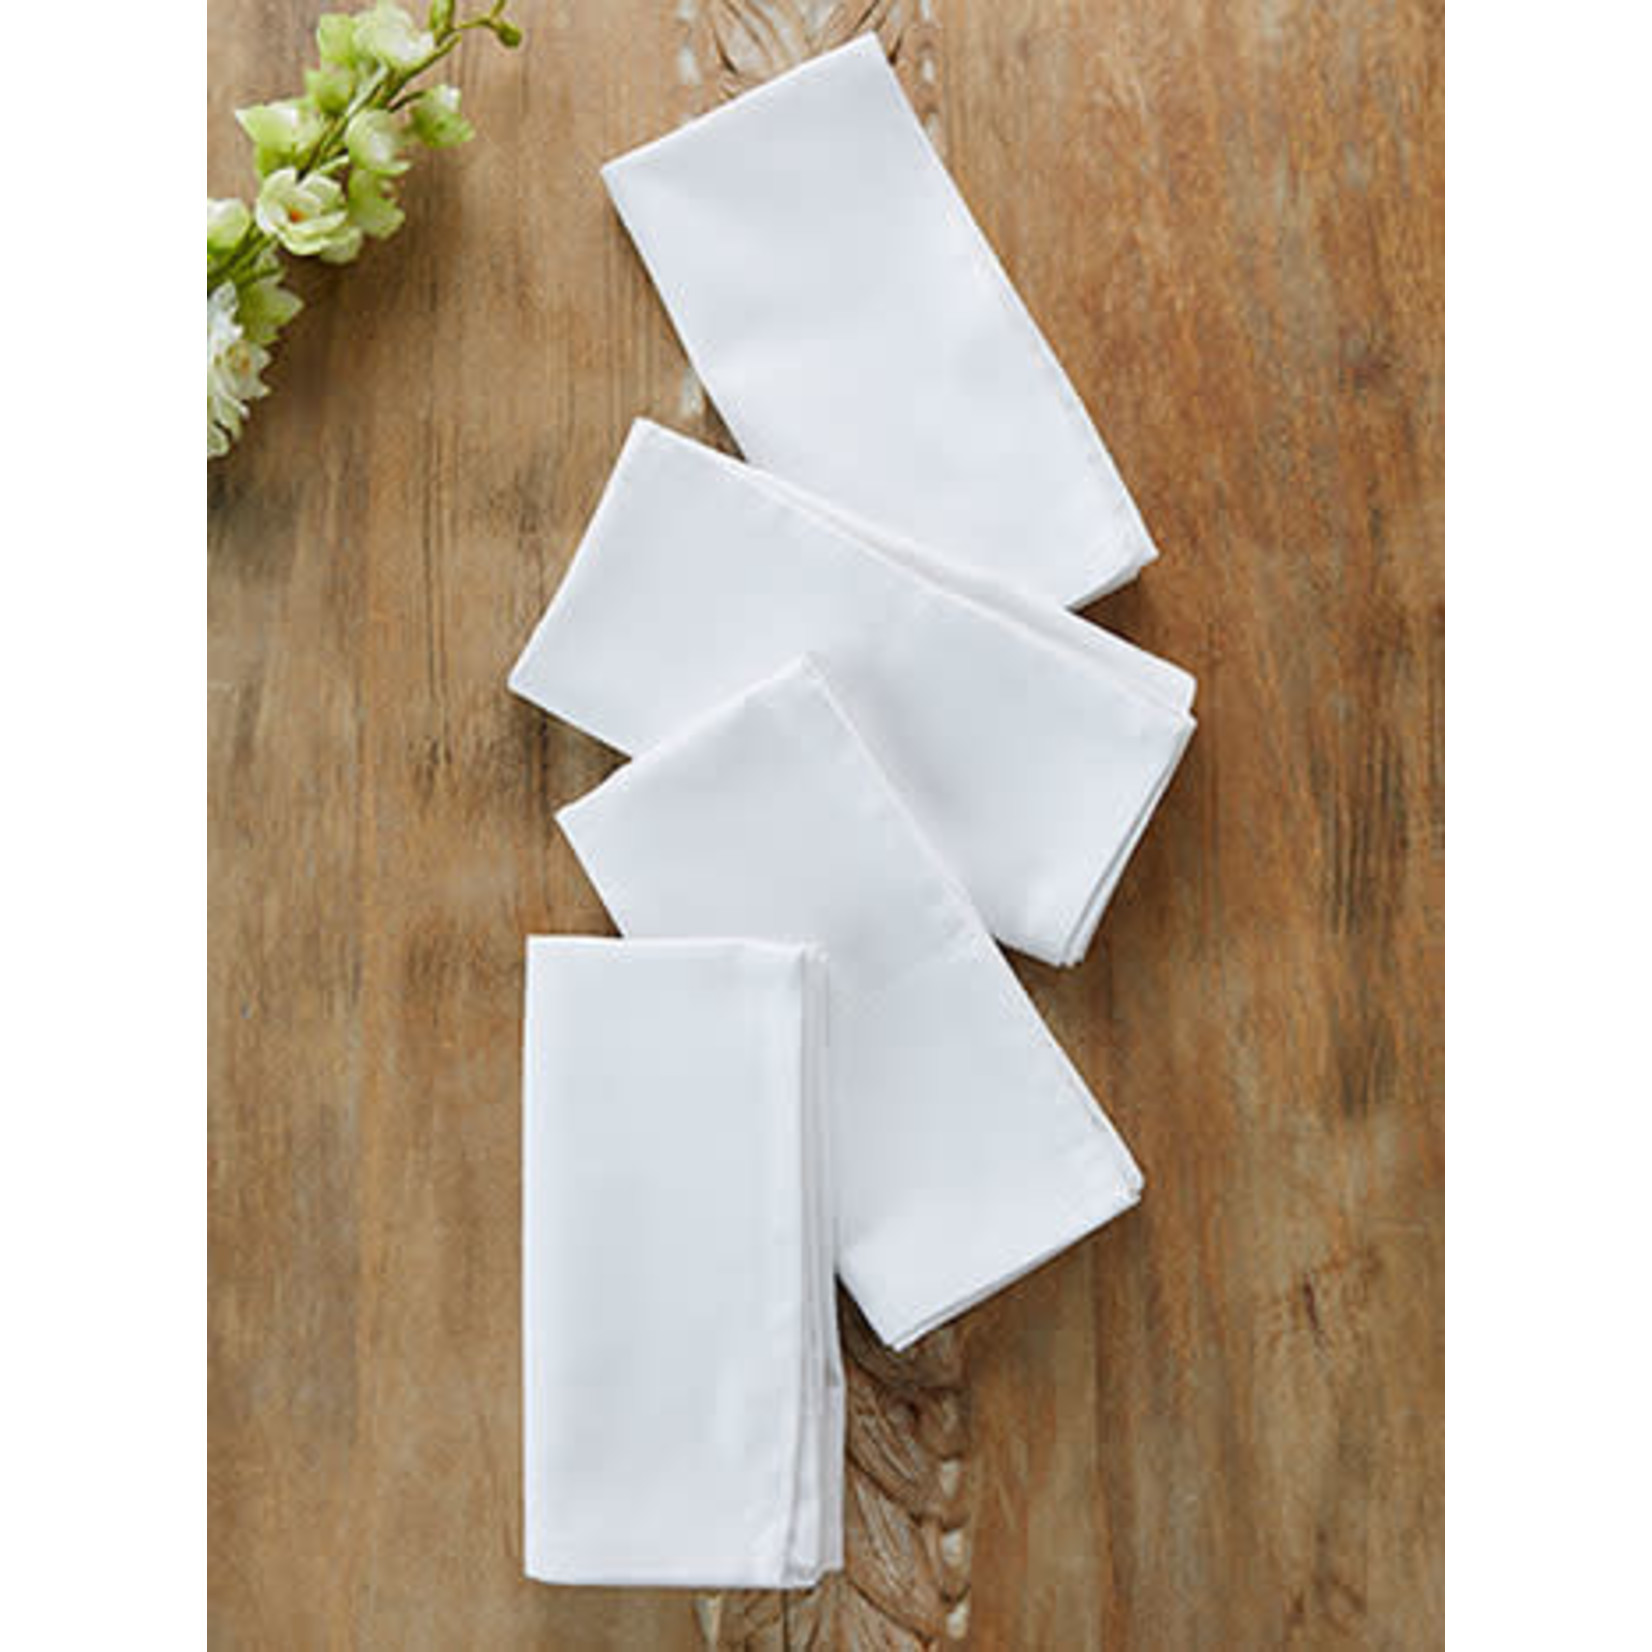 Hemmed Essential Napkin Set of 4 White